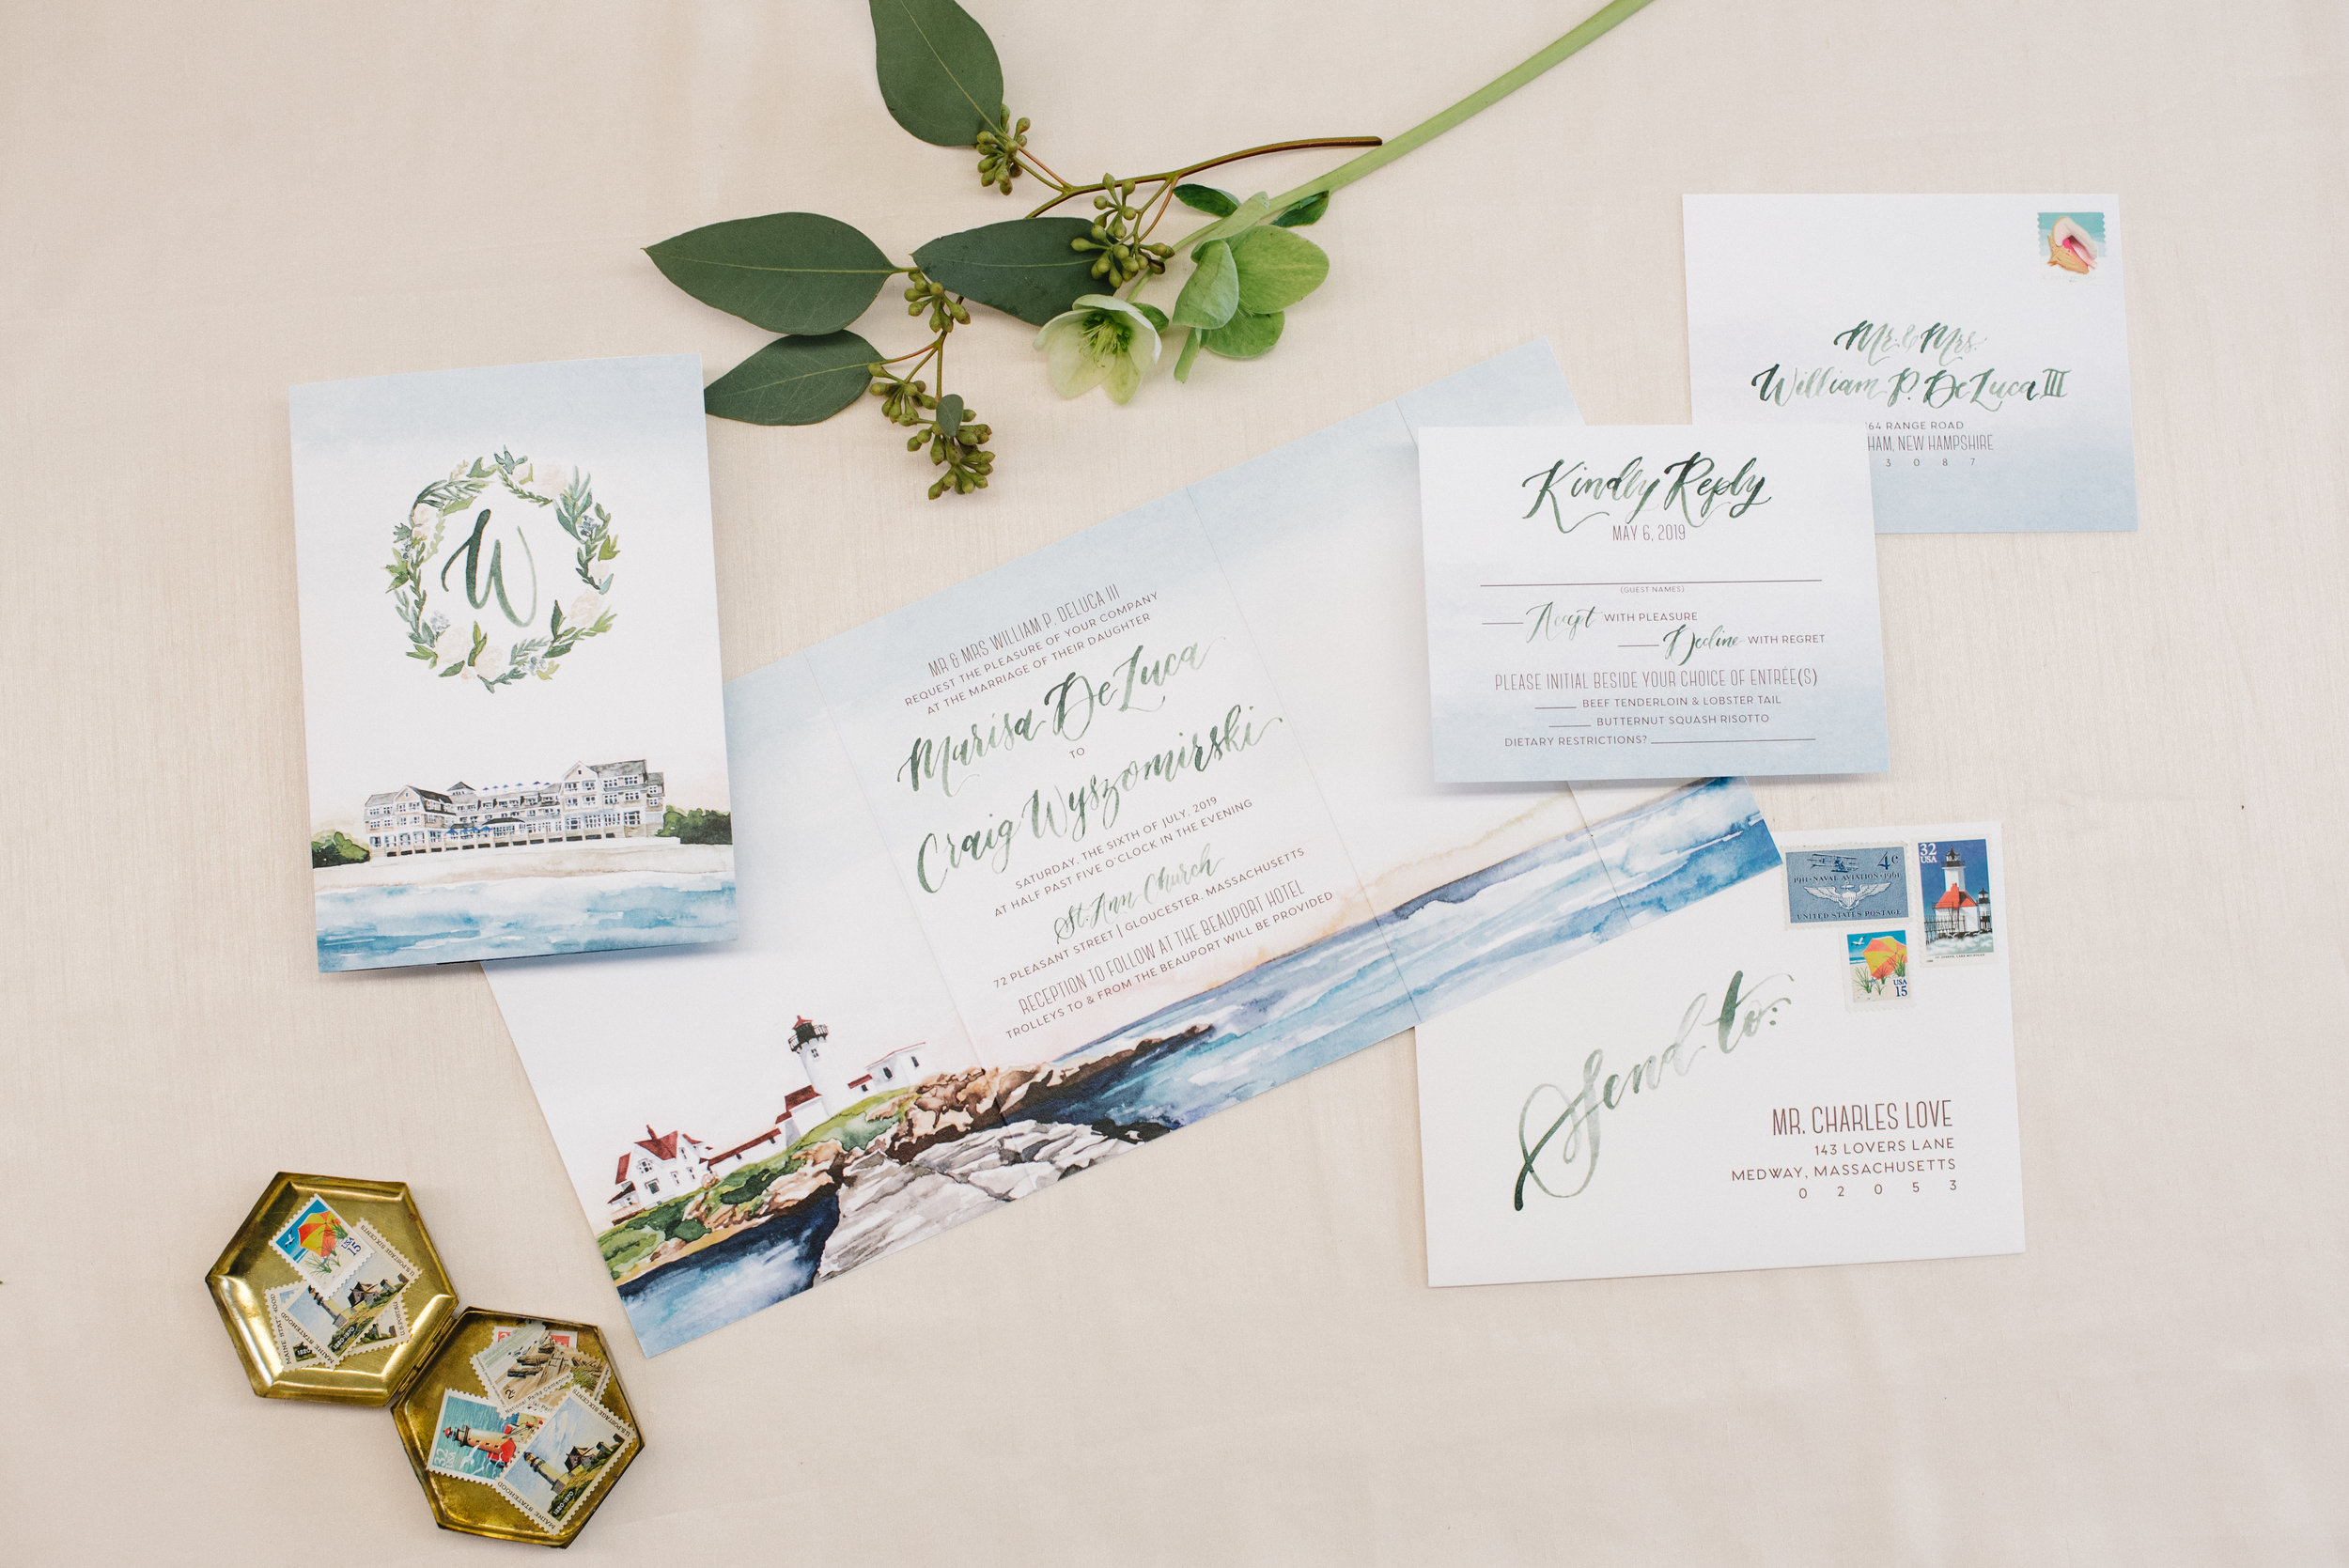 BEAUPORT HOTEL, GLOUCESTER MA, WATERCOLOR WEDDING INVITATIONS